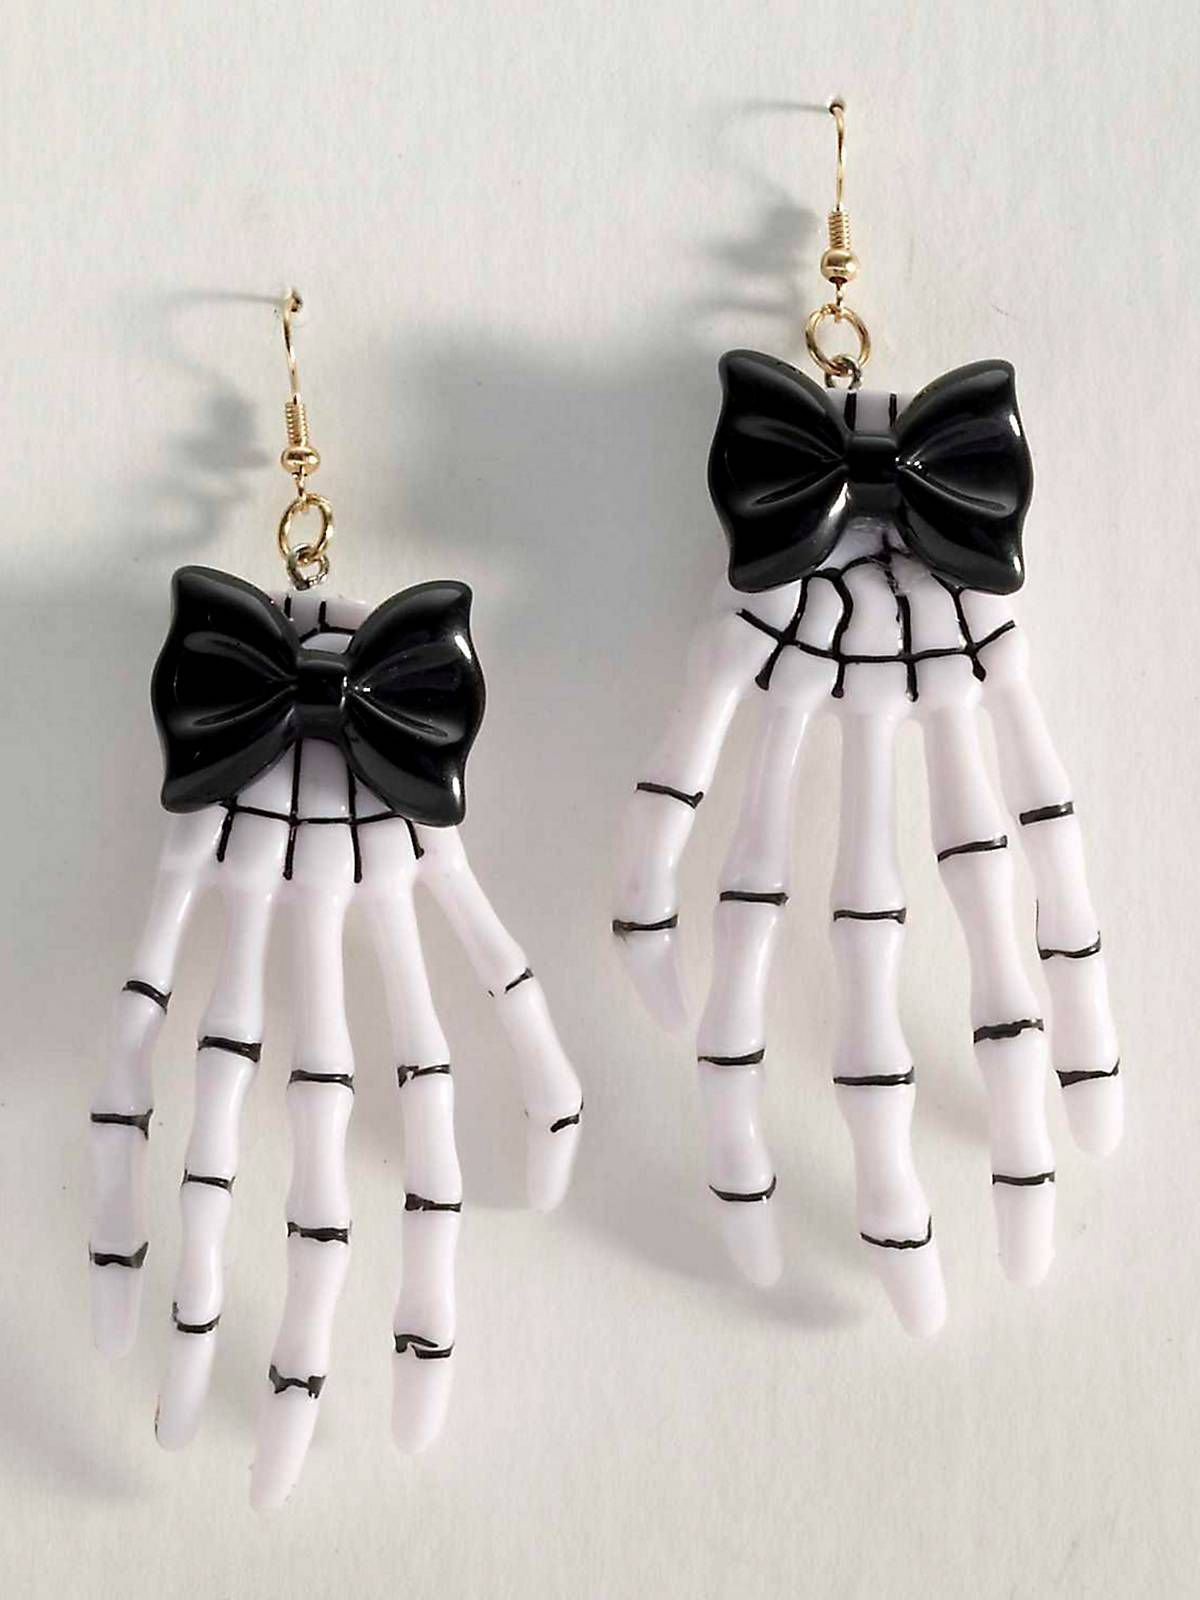 Skeleton Hand Earrings Punk/Gothic Accessories & Makeup